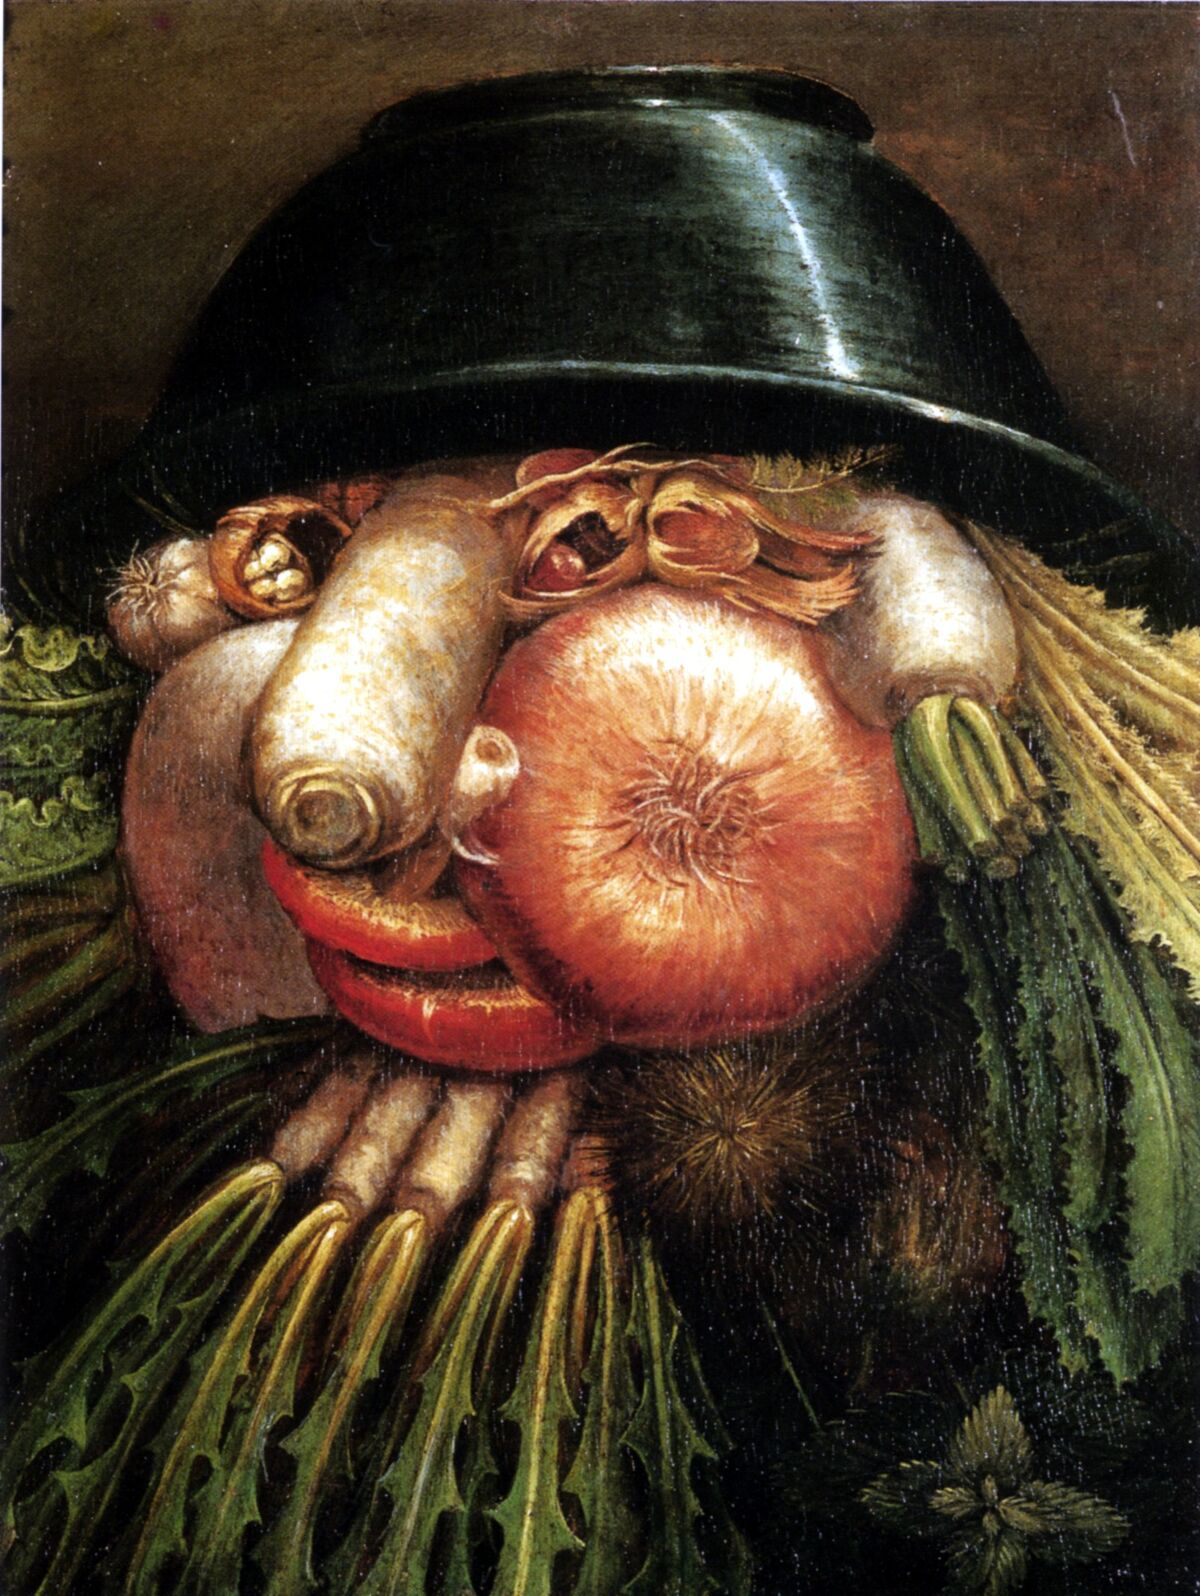 Giuseppe Arcimboldo, Portrait with Vegetables (The Greengrocer). Image via Wikimedia Commons.